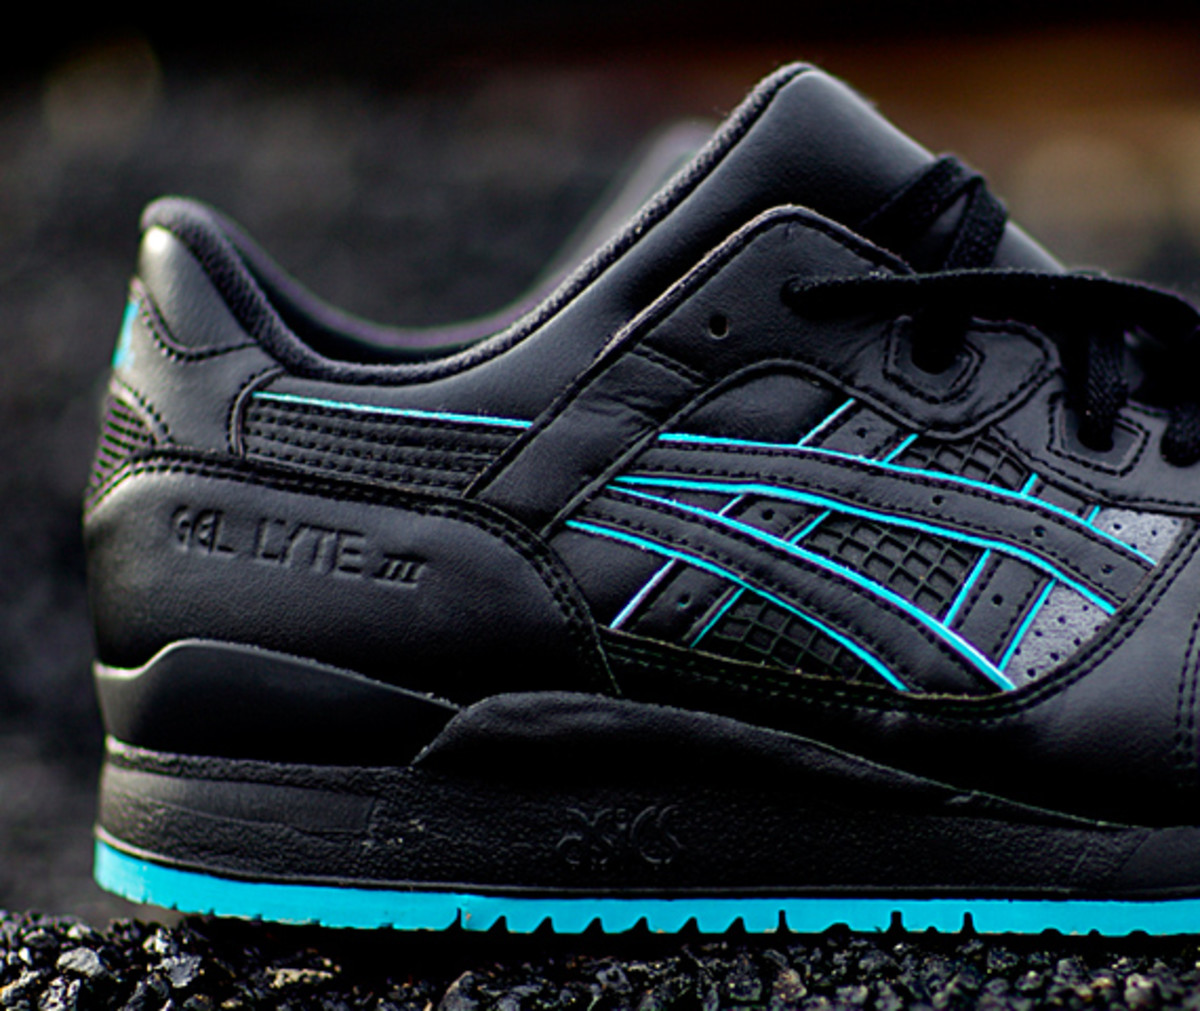 ronnie-fieg-asics-gel-lyte-iii-leather-back-kith-02